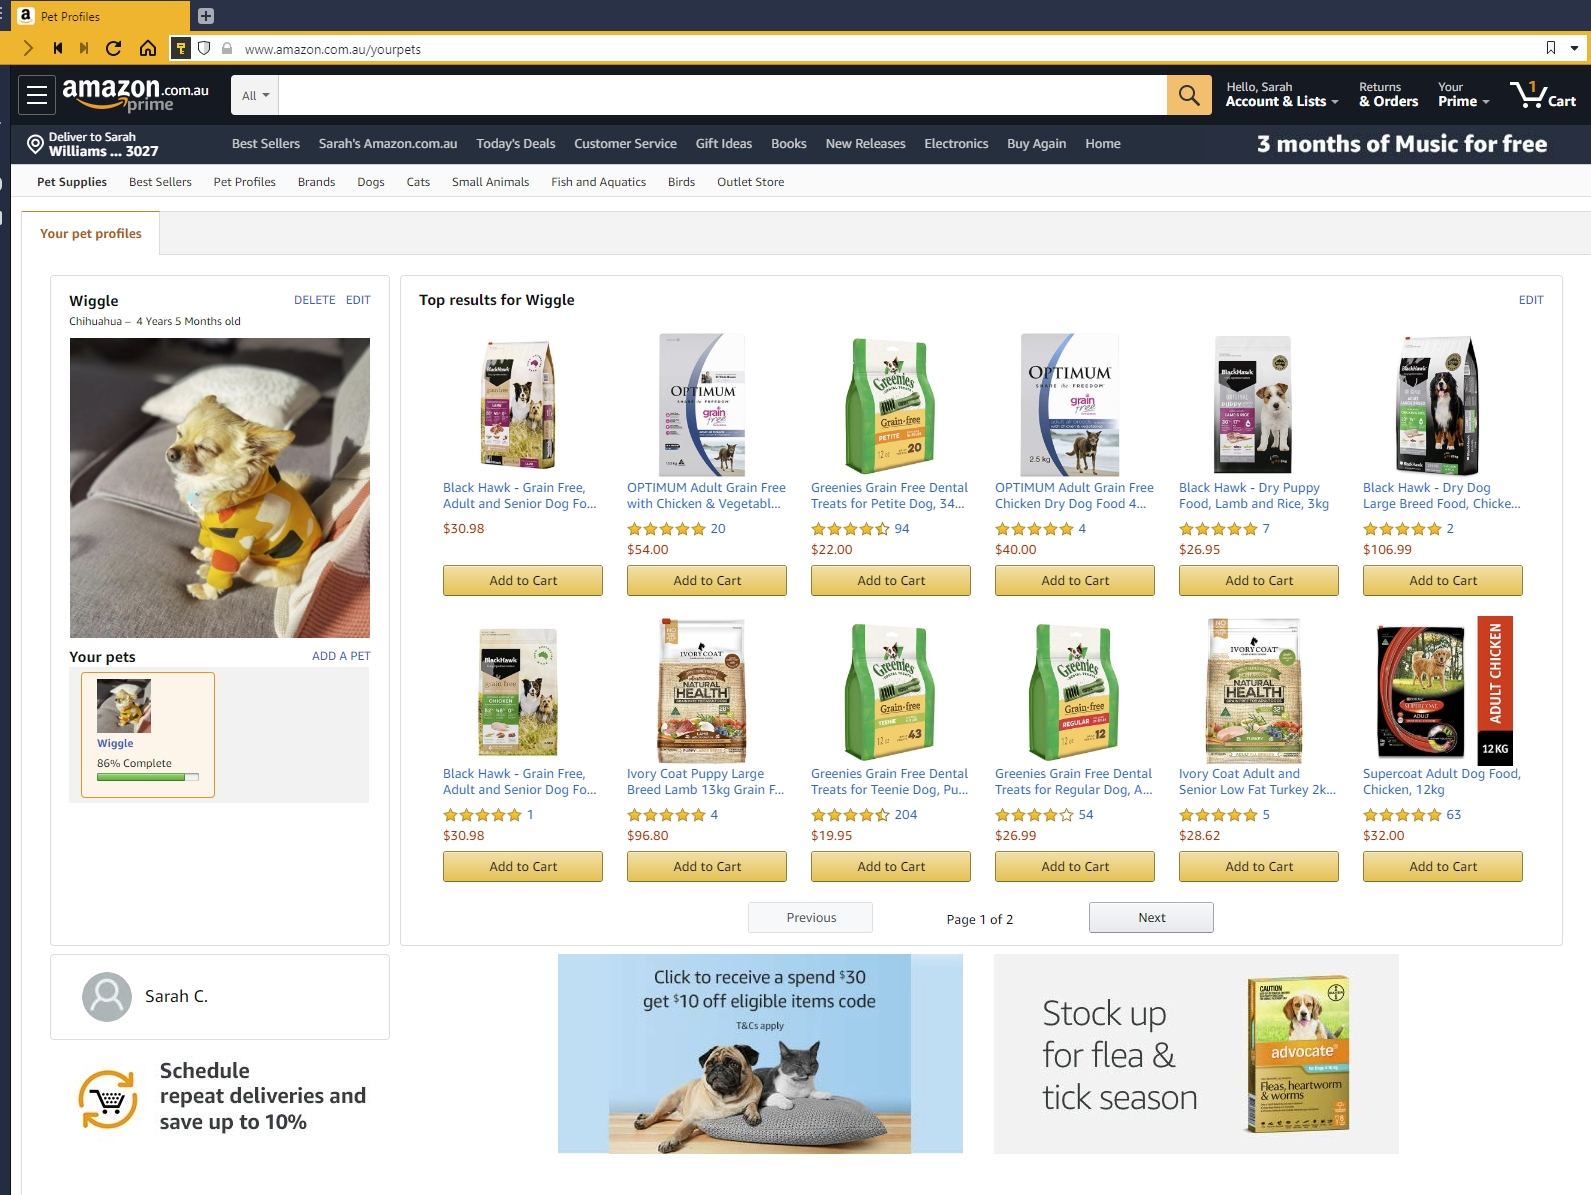 You can now add your pet to your Amazon account